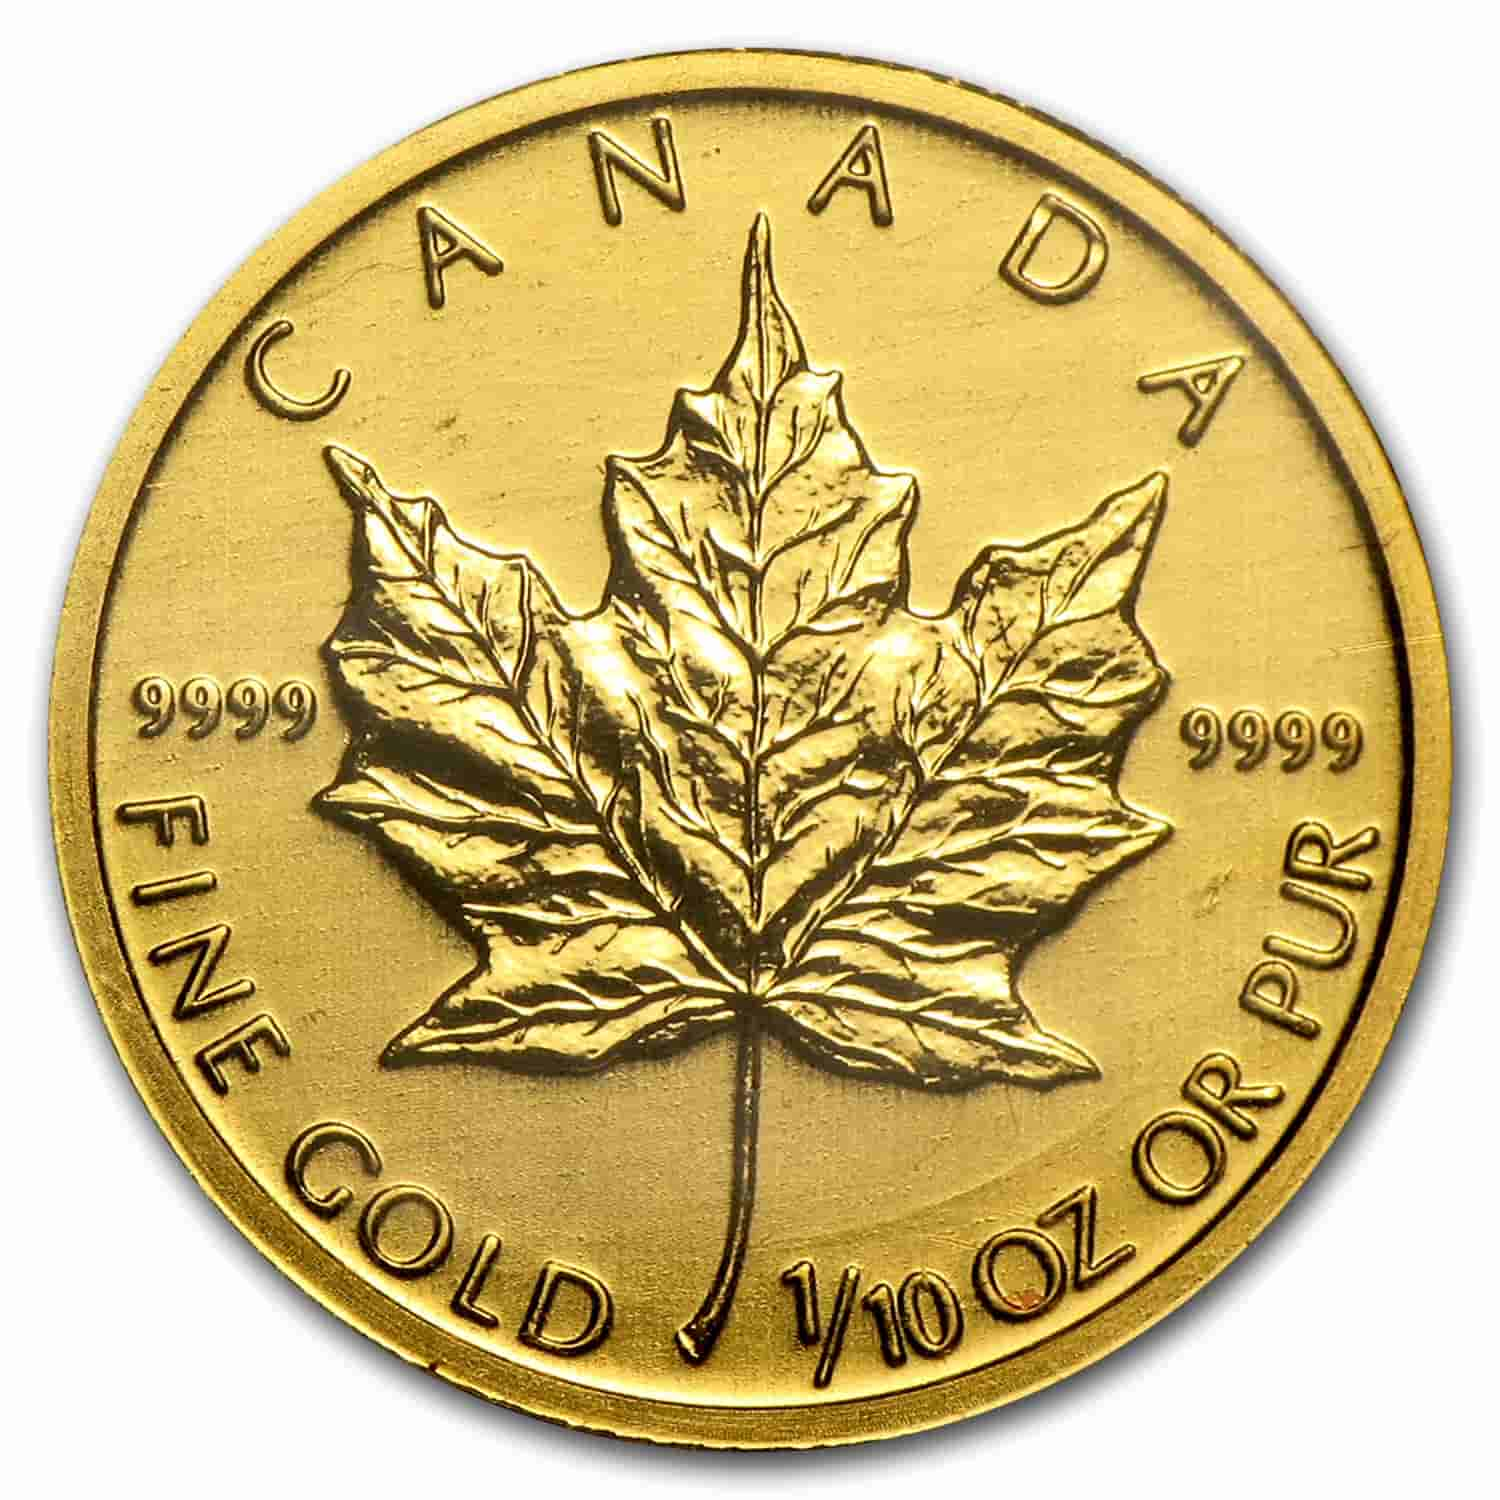 Canadian Gold Maple Leaf Coins as a Gold Bullion Investment